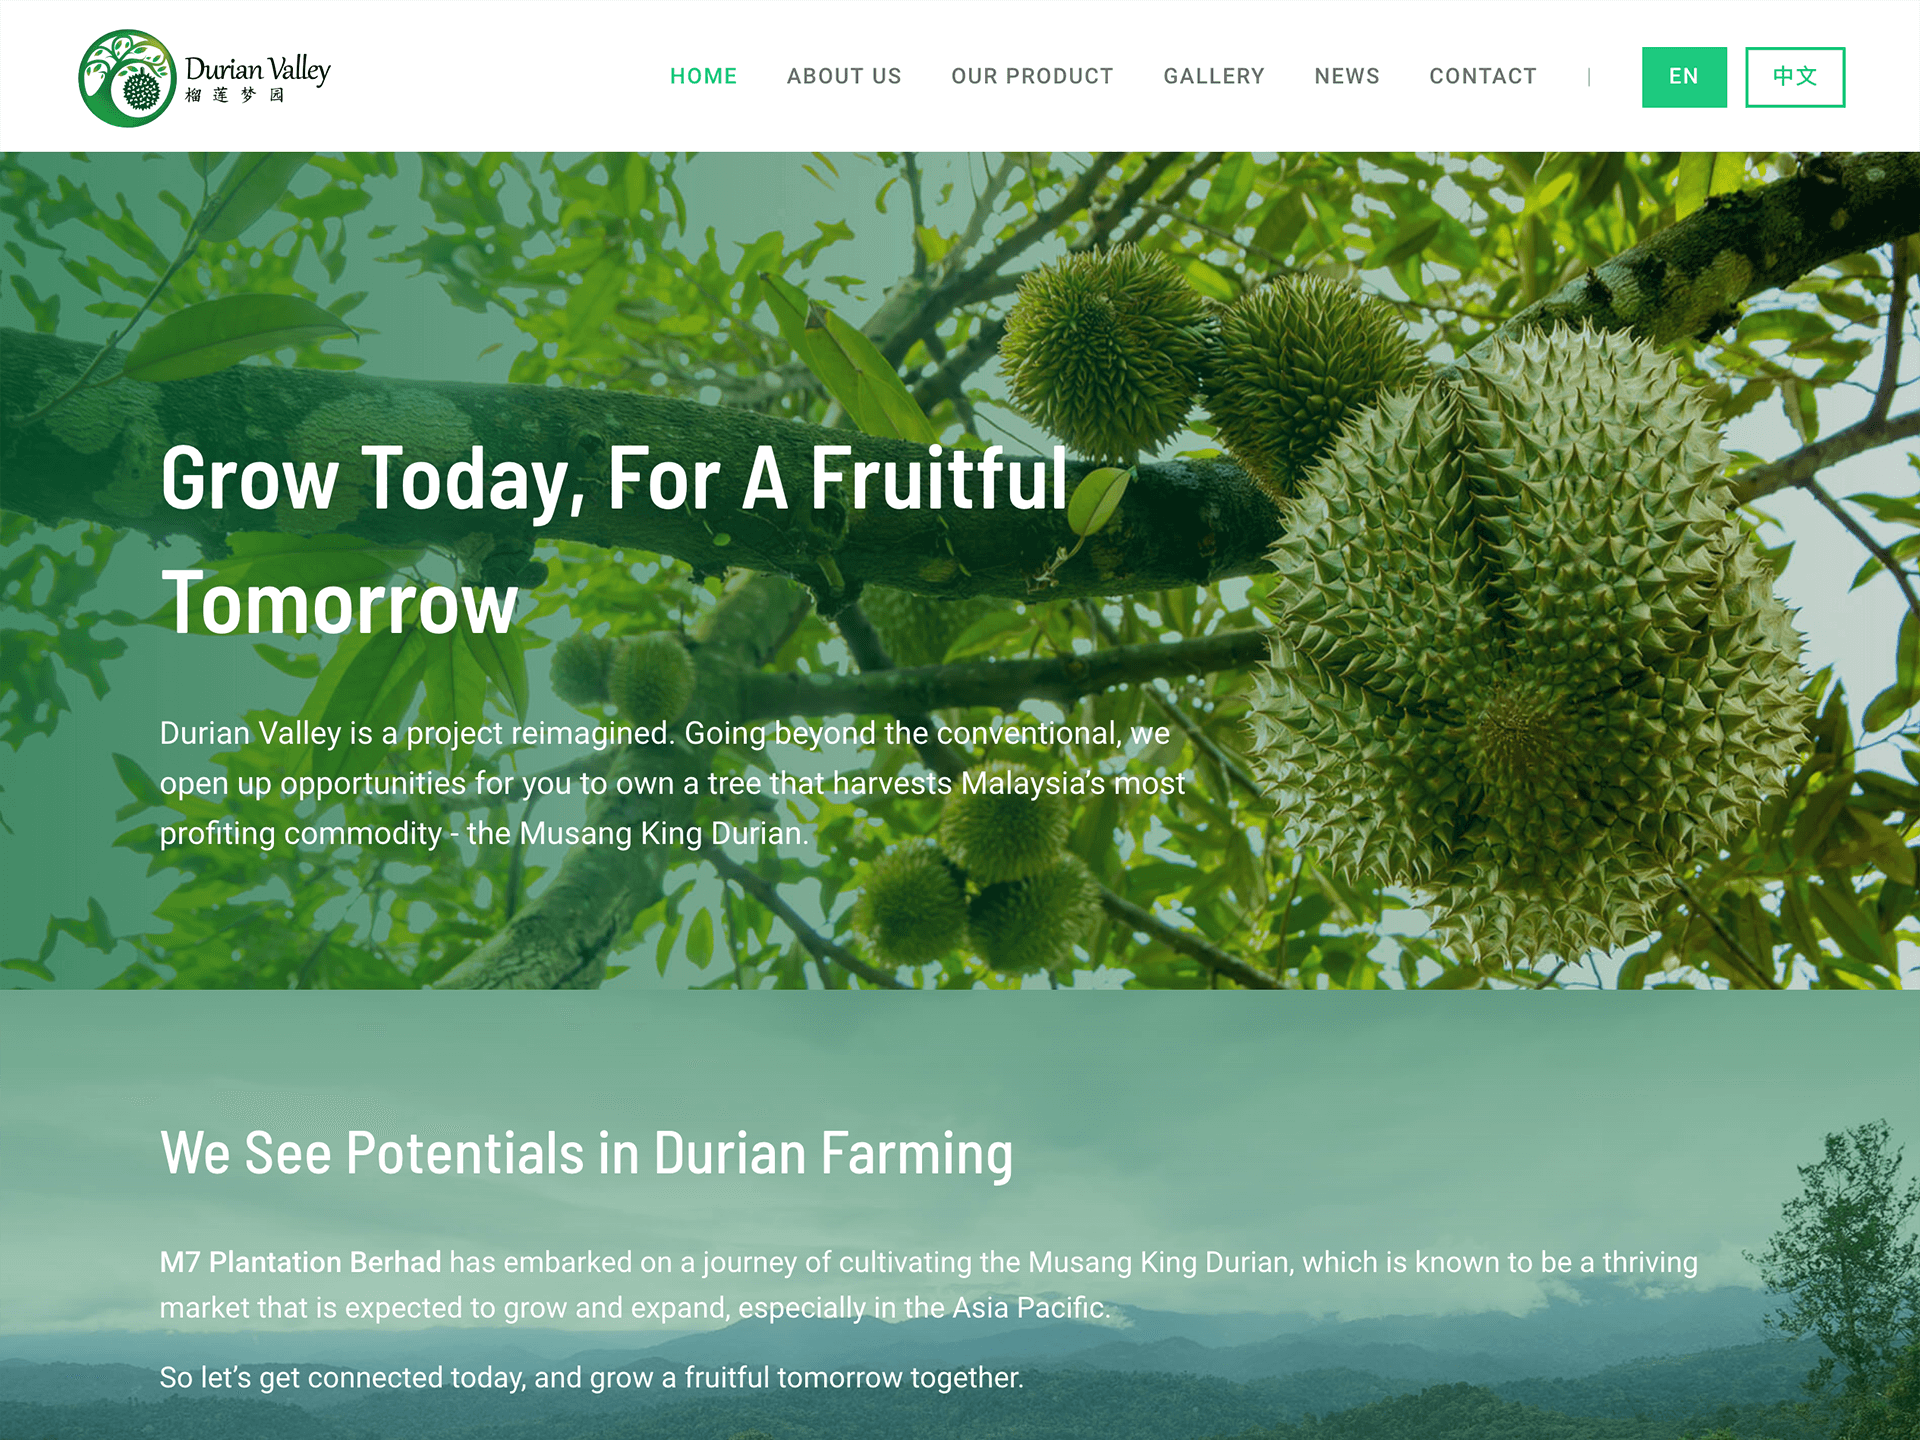 Durian Valley website